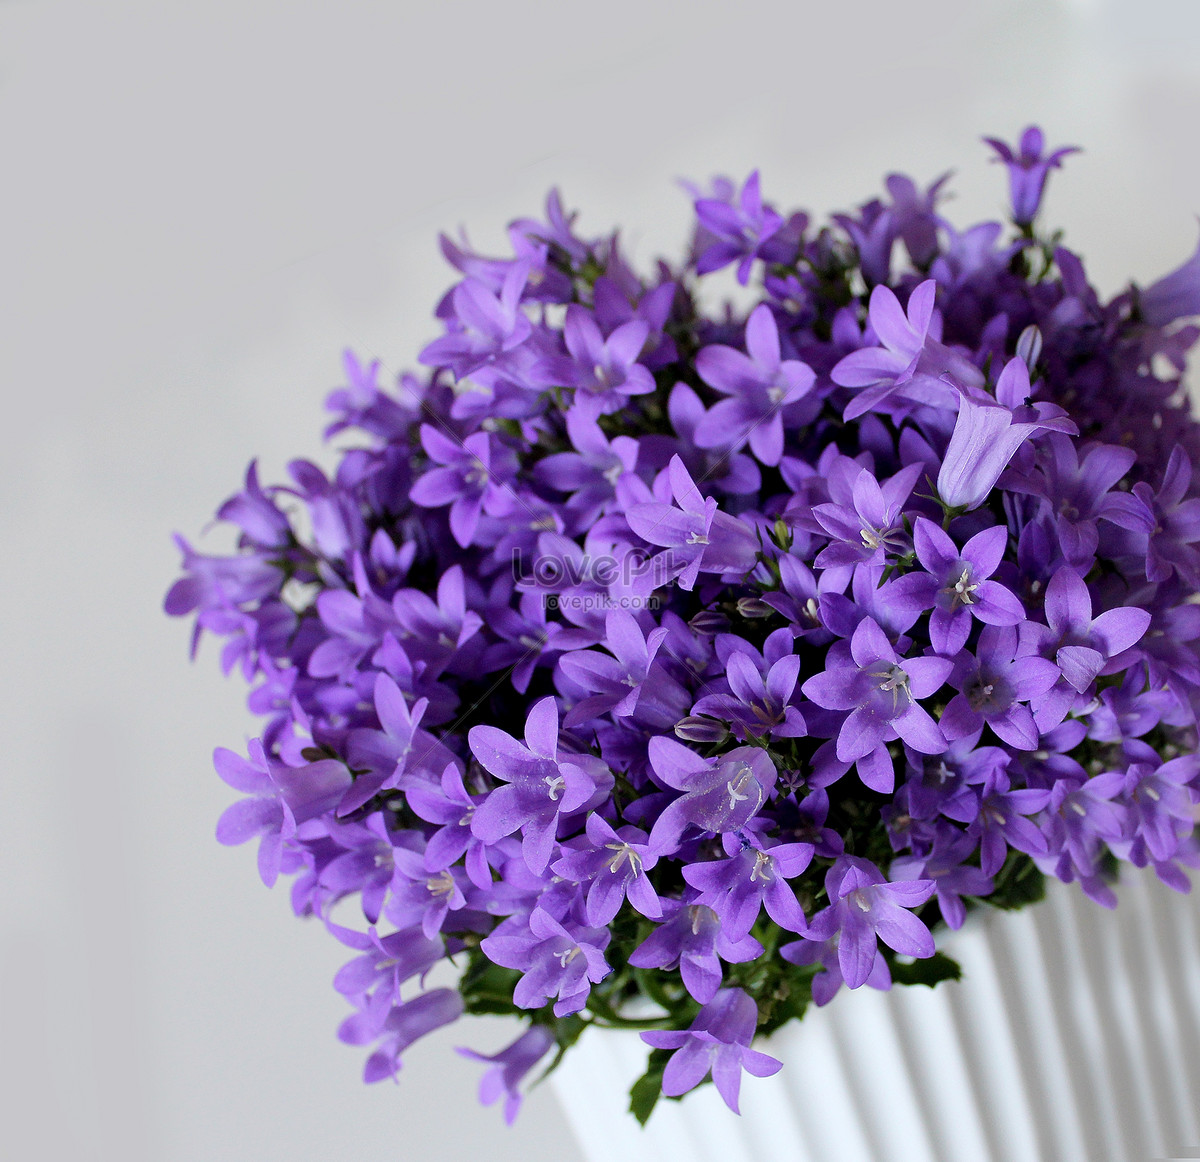 A purple flower bouquet in a white background photo image_picture ...